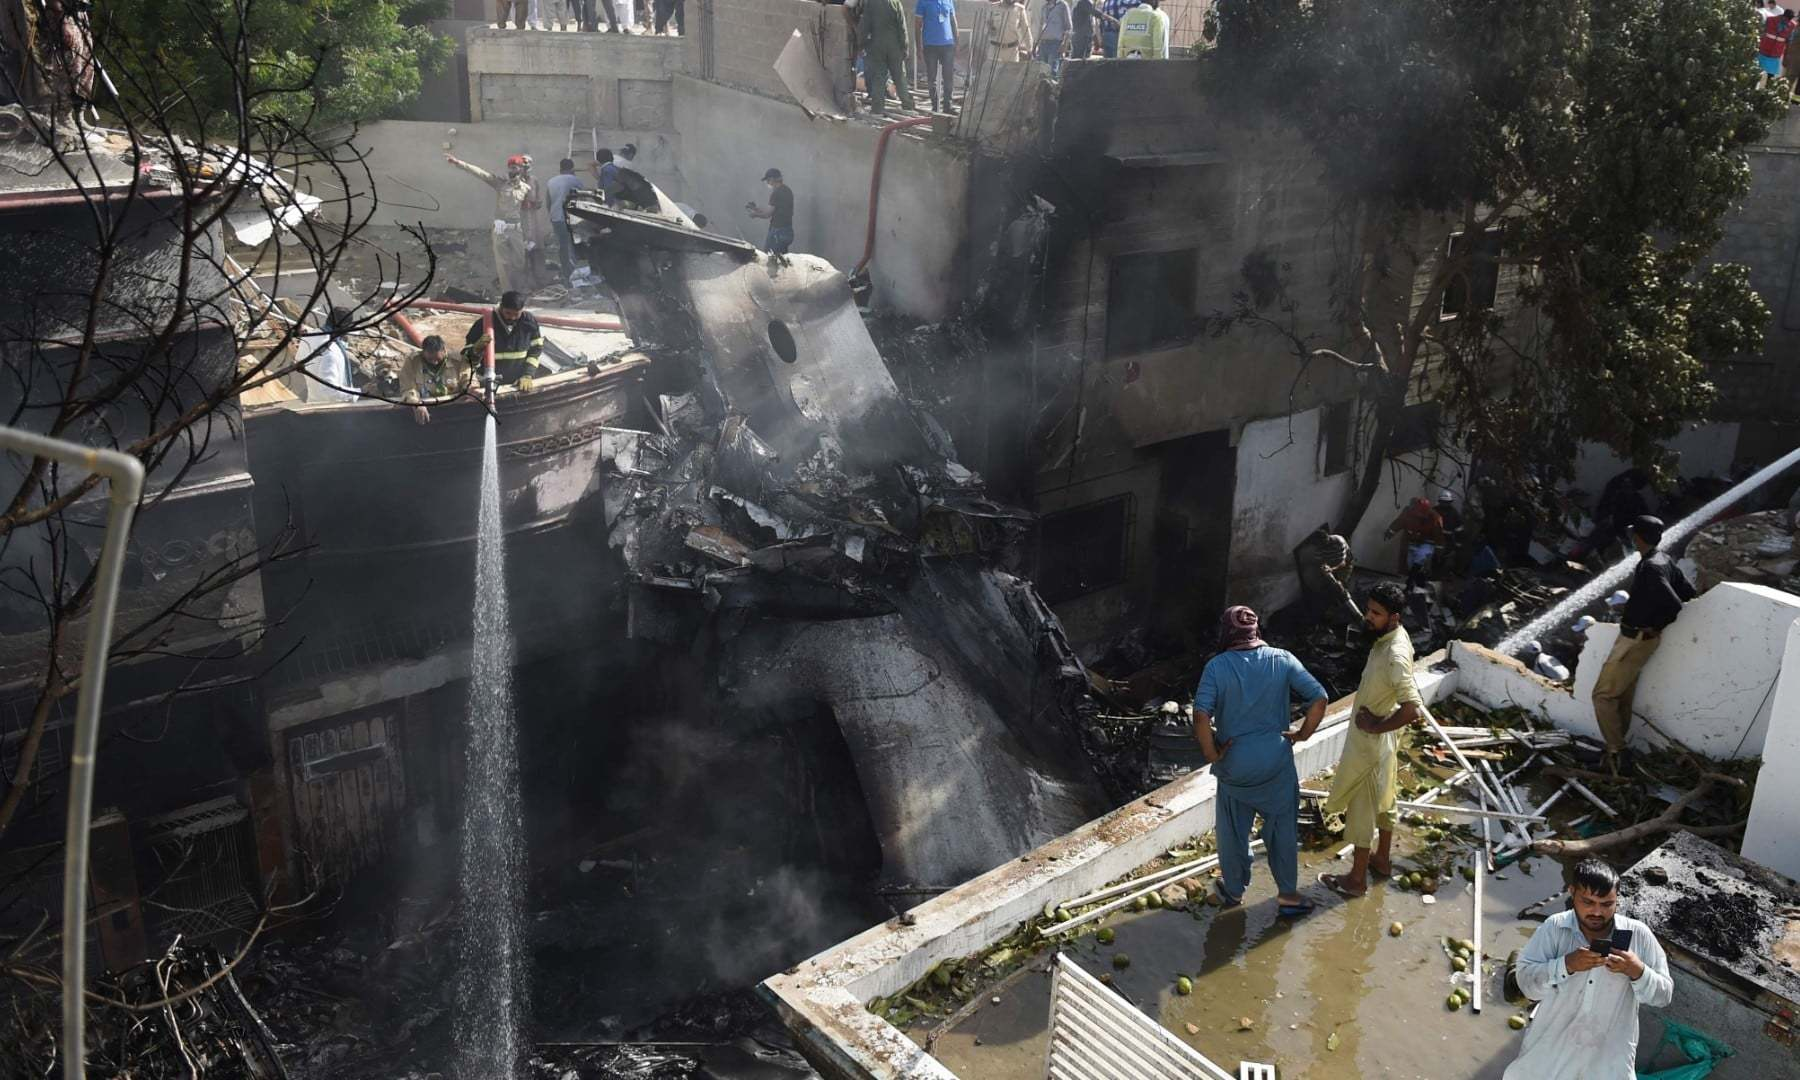 Pilots Body Demands Probe Into Karchi Plane Crash Pakistan